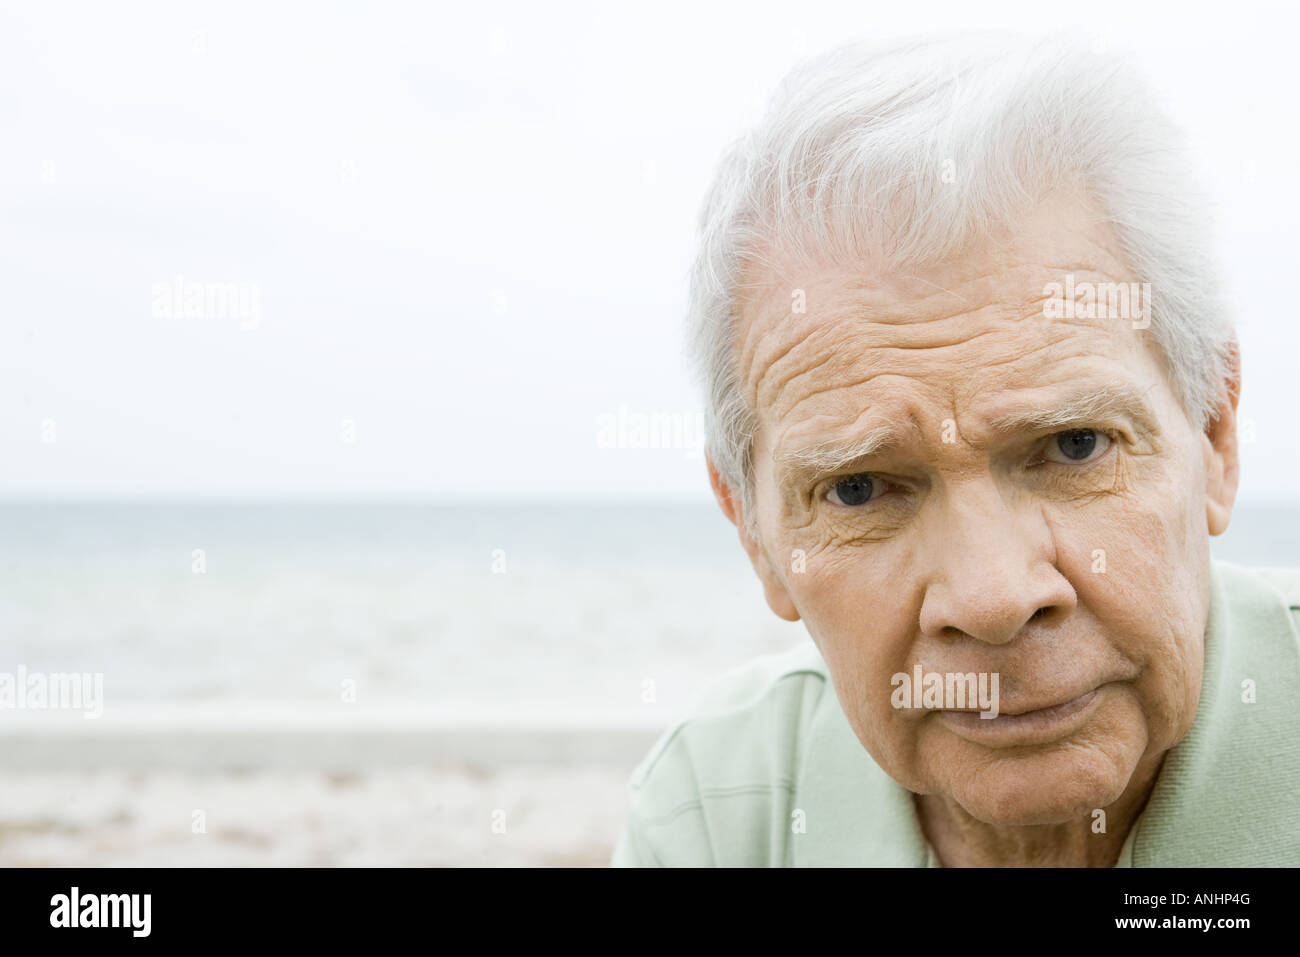 Senior man looking at camera, furrowing brow, close-up - Stock Image